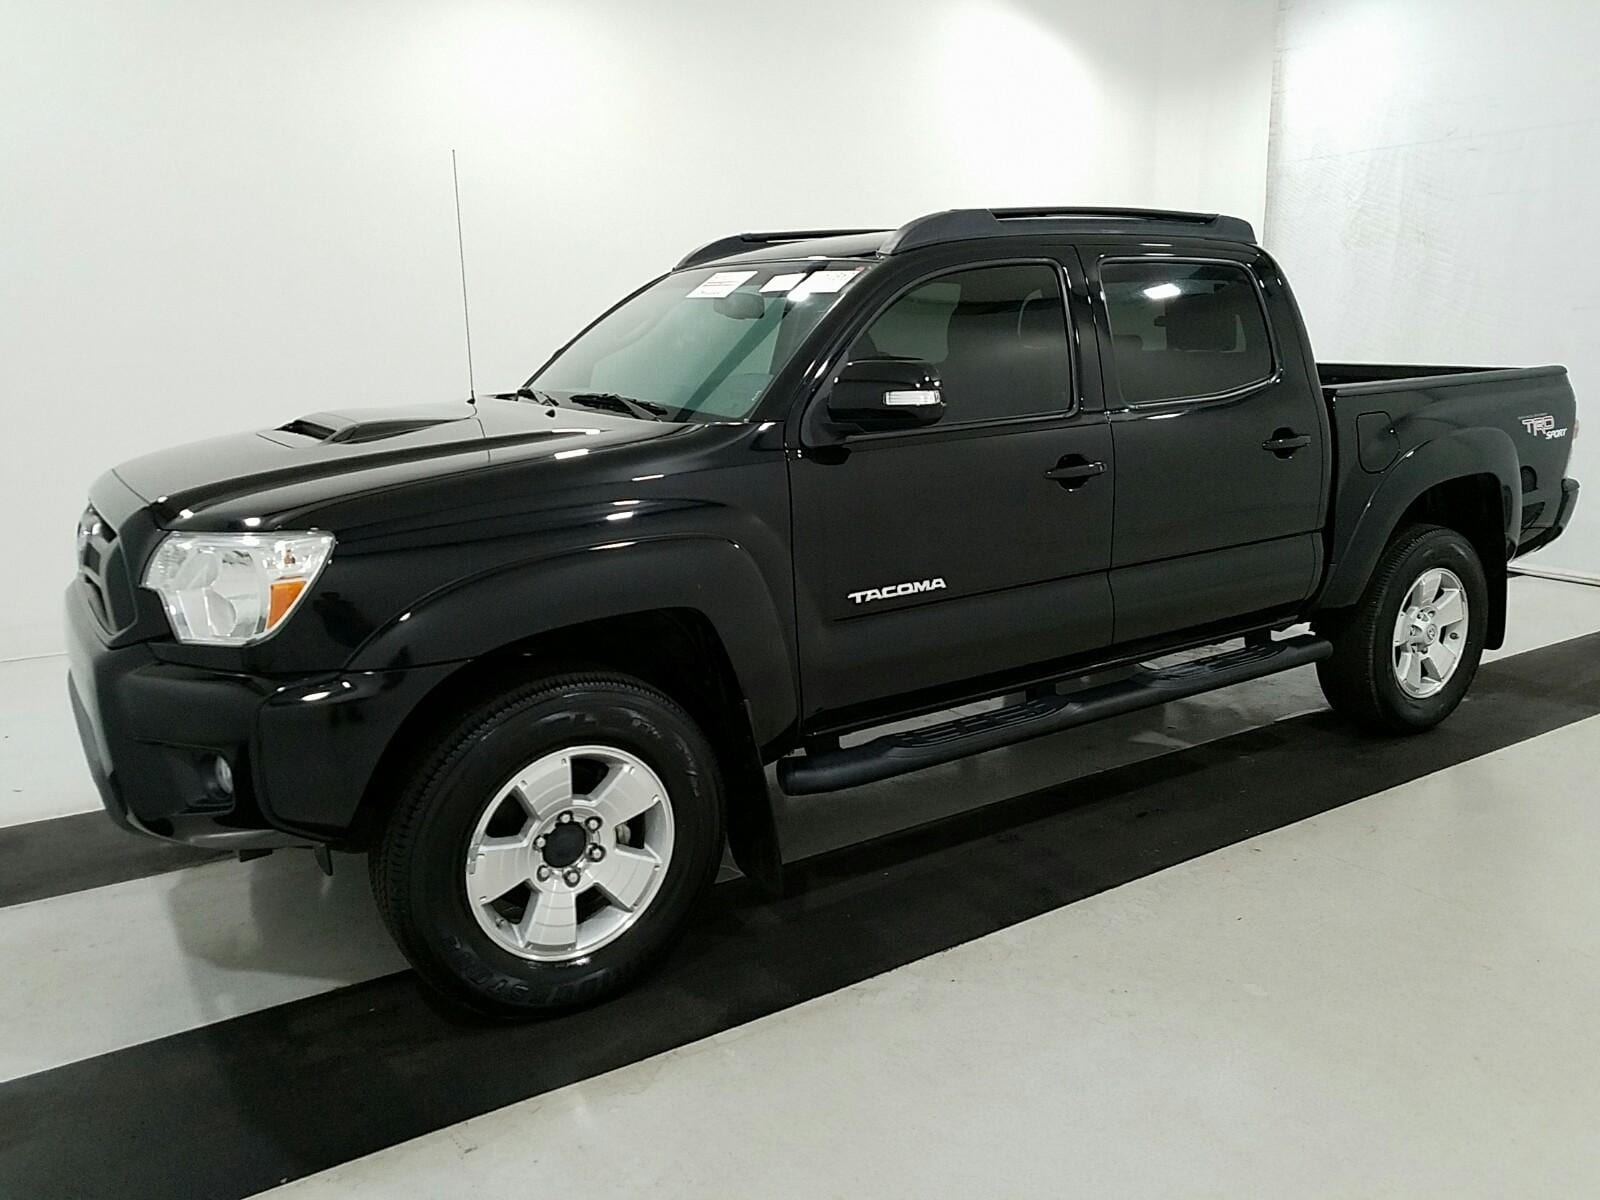 2013 toyota tacoma x runner repair autos weblog for Tacoma honda service